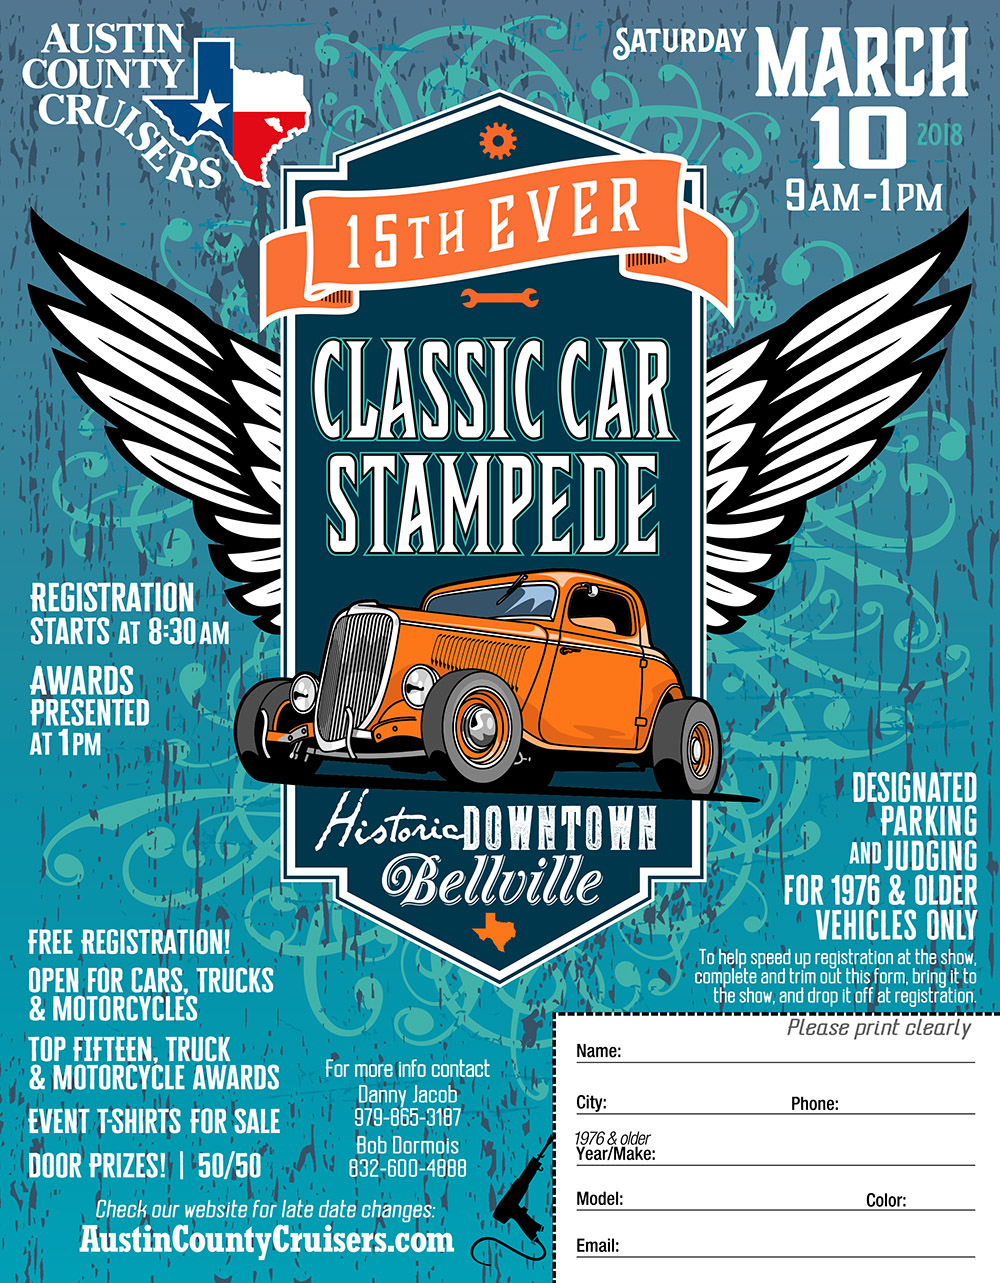 Austin County Cruisers Classic Car Stampede 2018 flyer